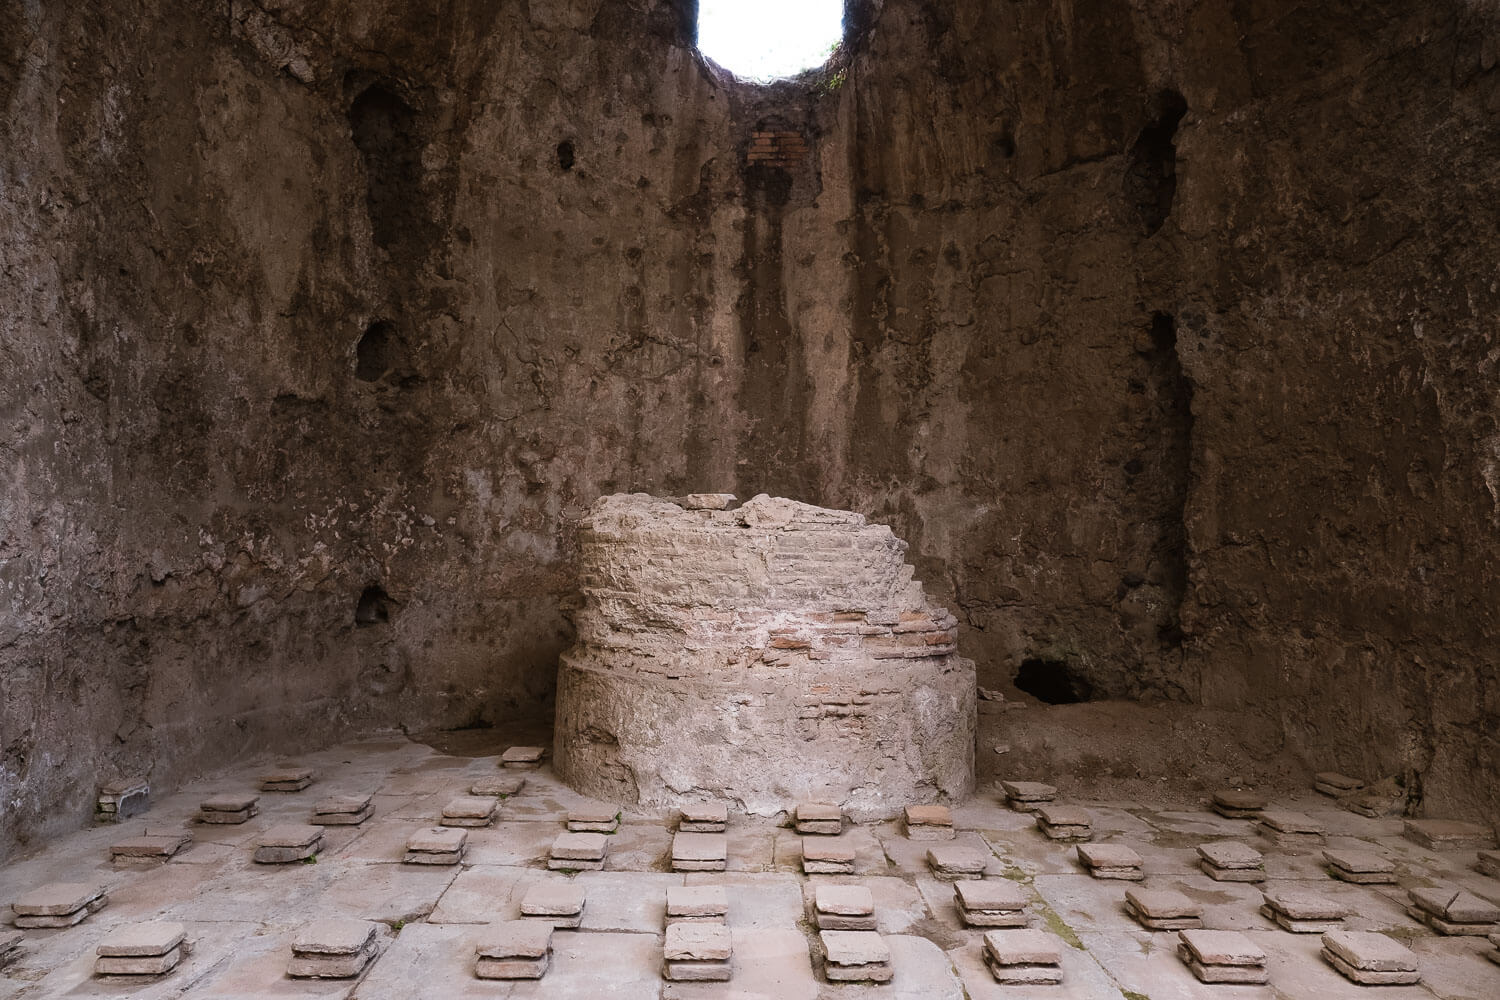 """Tiles on the floor showing the hypocaust system in the thermal baths, Pompeii. Travel photography and guide by © Natasha Lequepeys for """"And Then I Met Yoko"""". #pompeii #italy #fujifilm #travelphotography"""